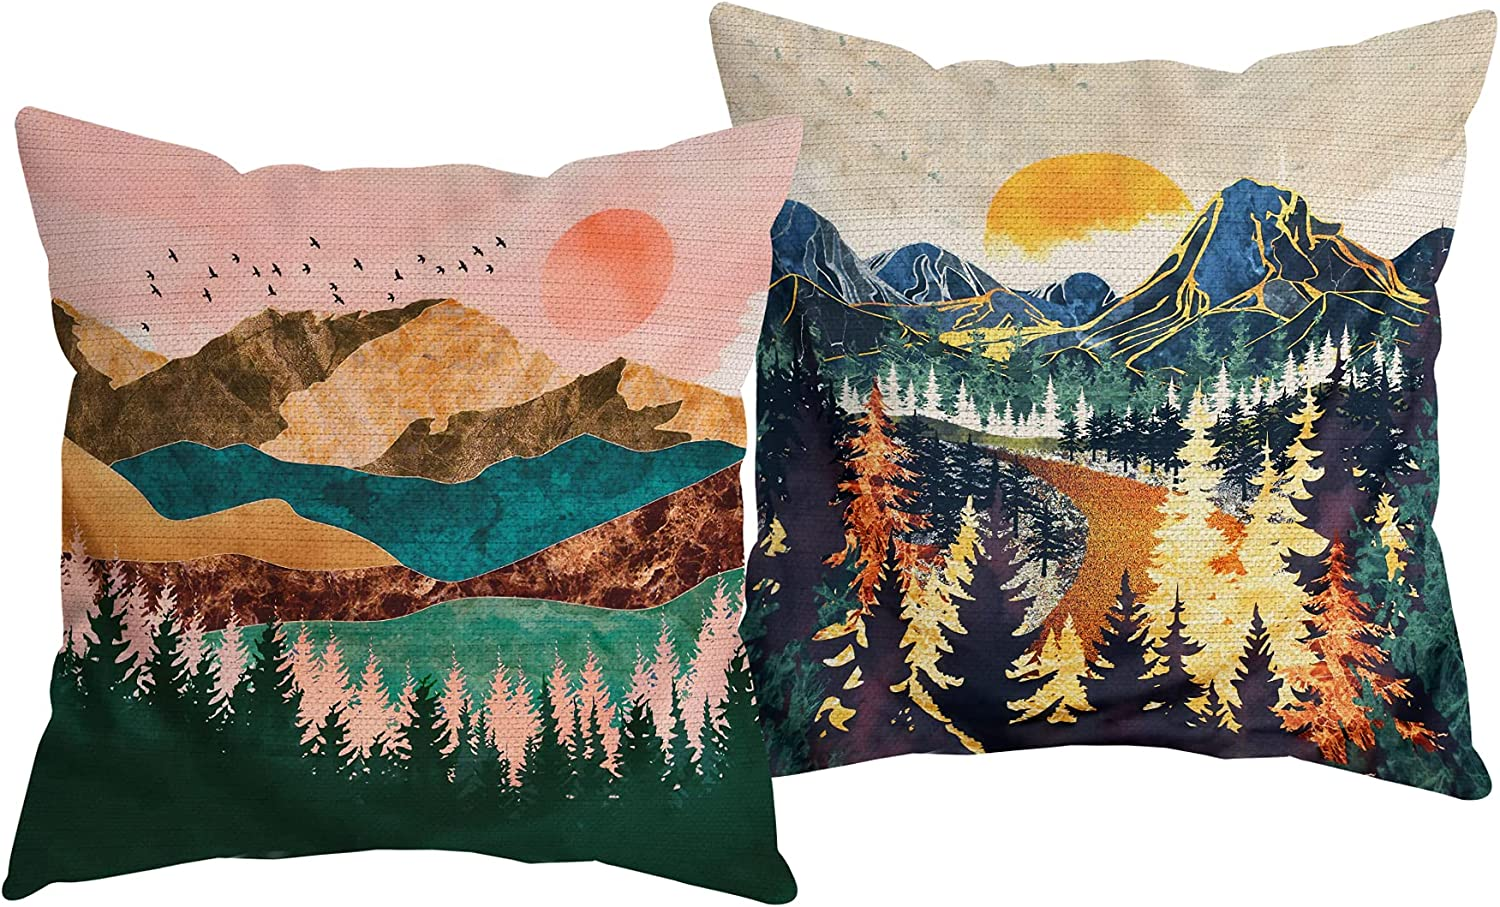 HUYAW Nature Forest Mountain Sunset P Throw Decorative 2021 Landscape security